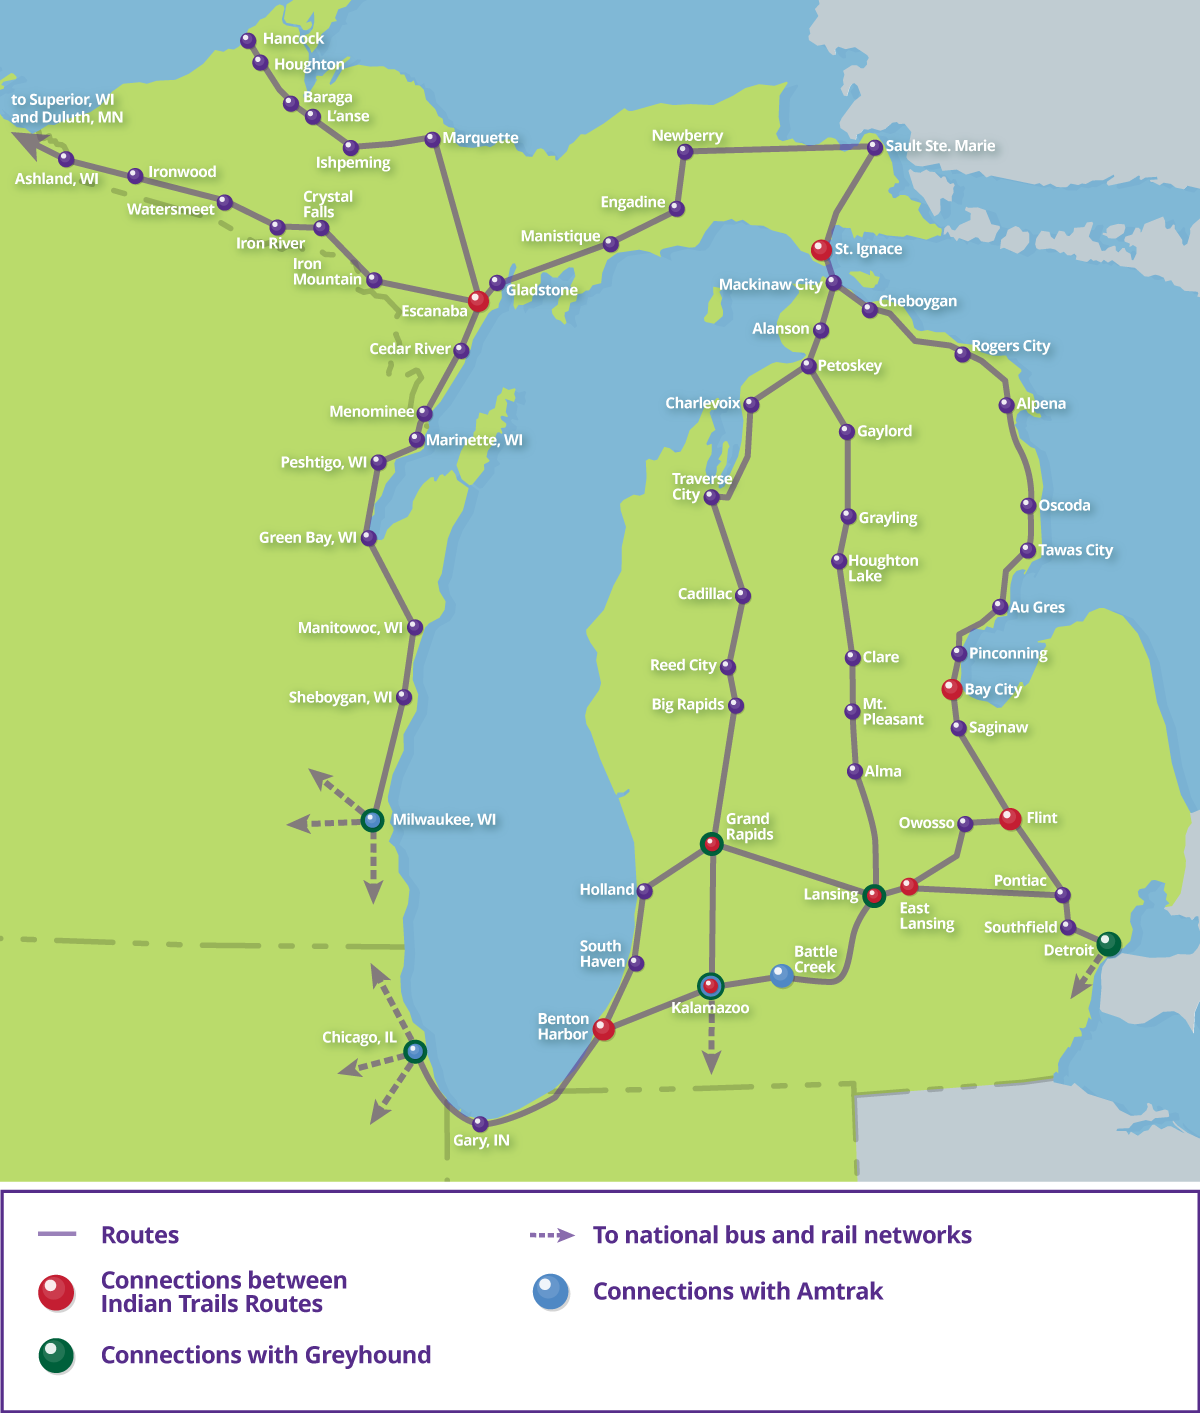 Bus Routes | Indian Trails, Michigan